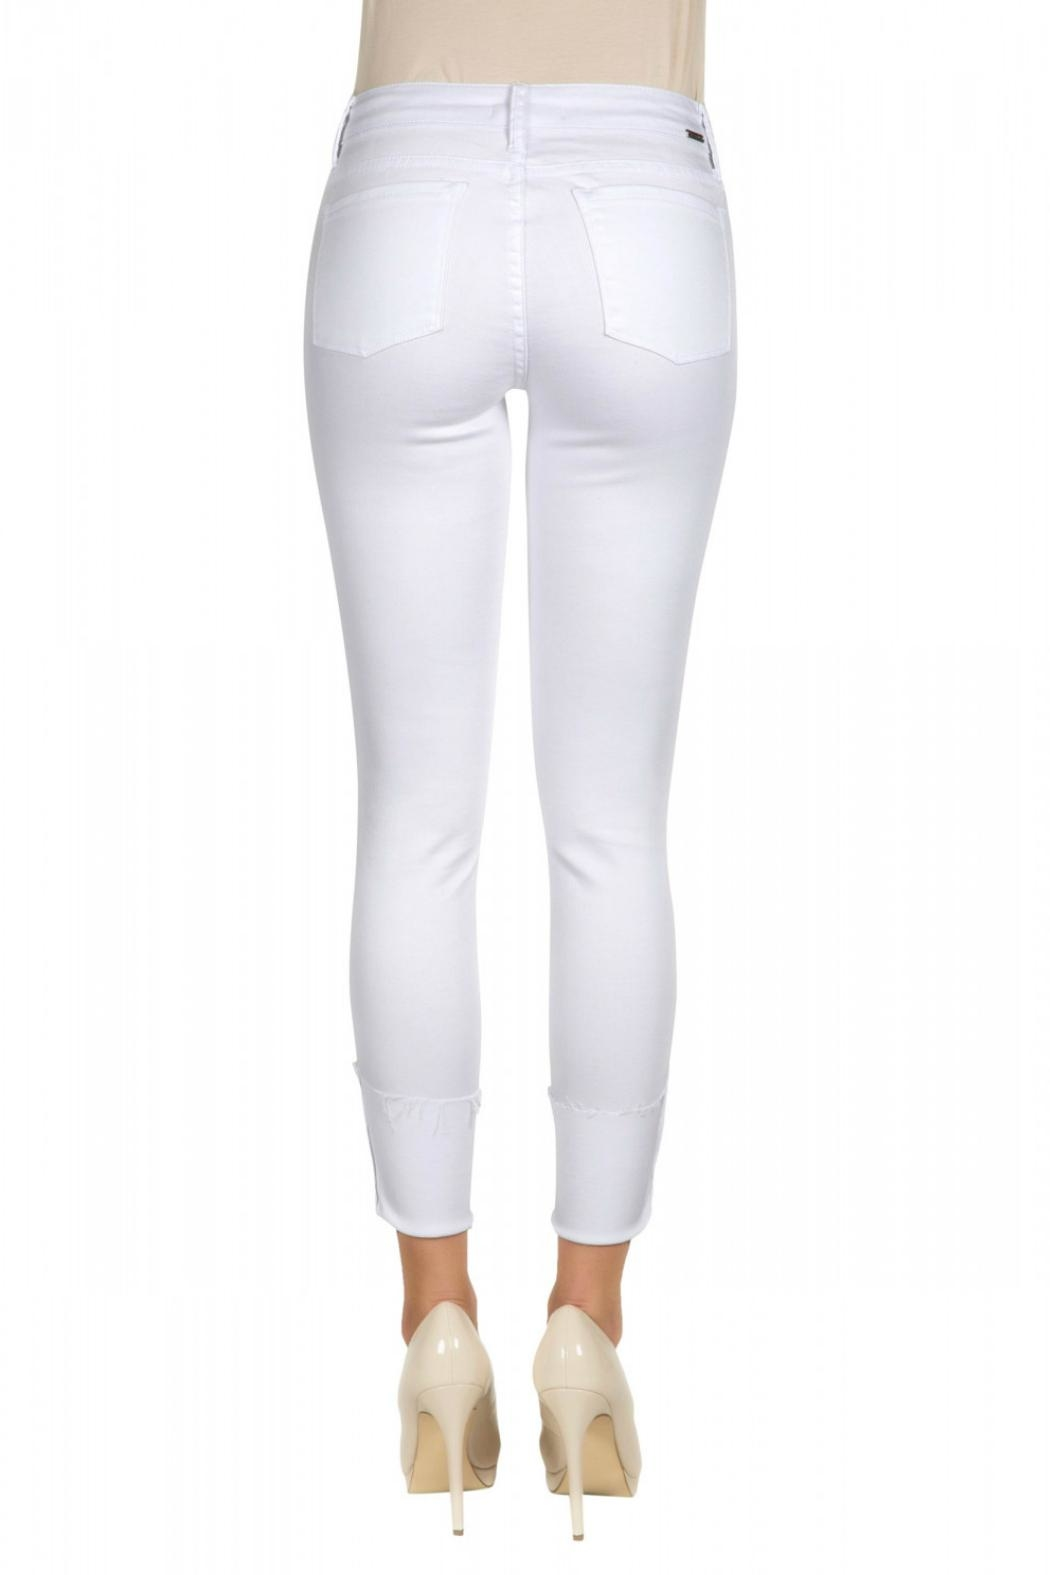 Tractr Midrise Cuff Jean - Side Cropped Image